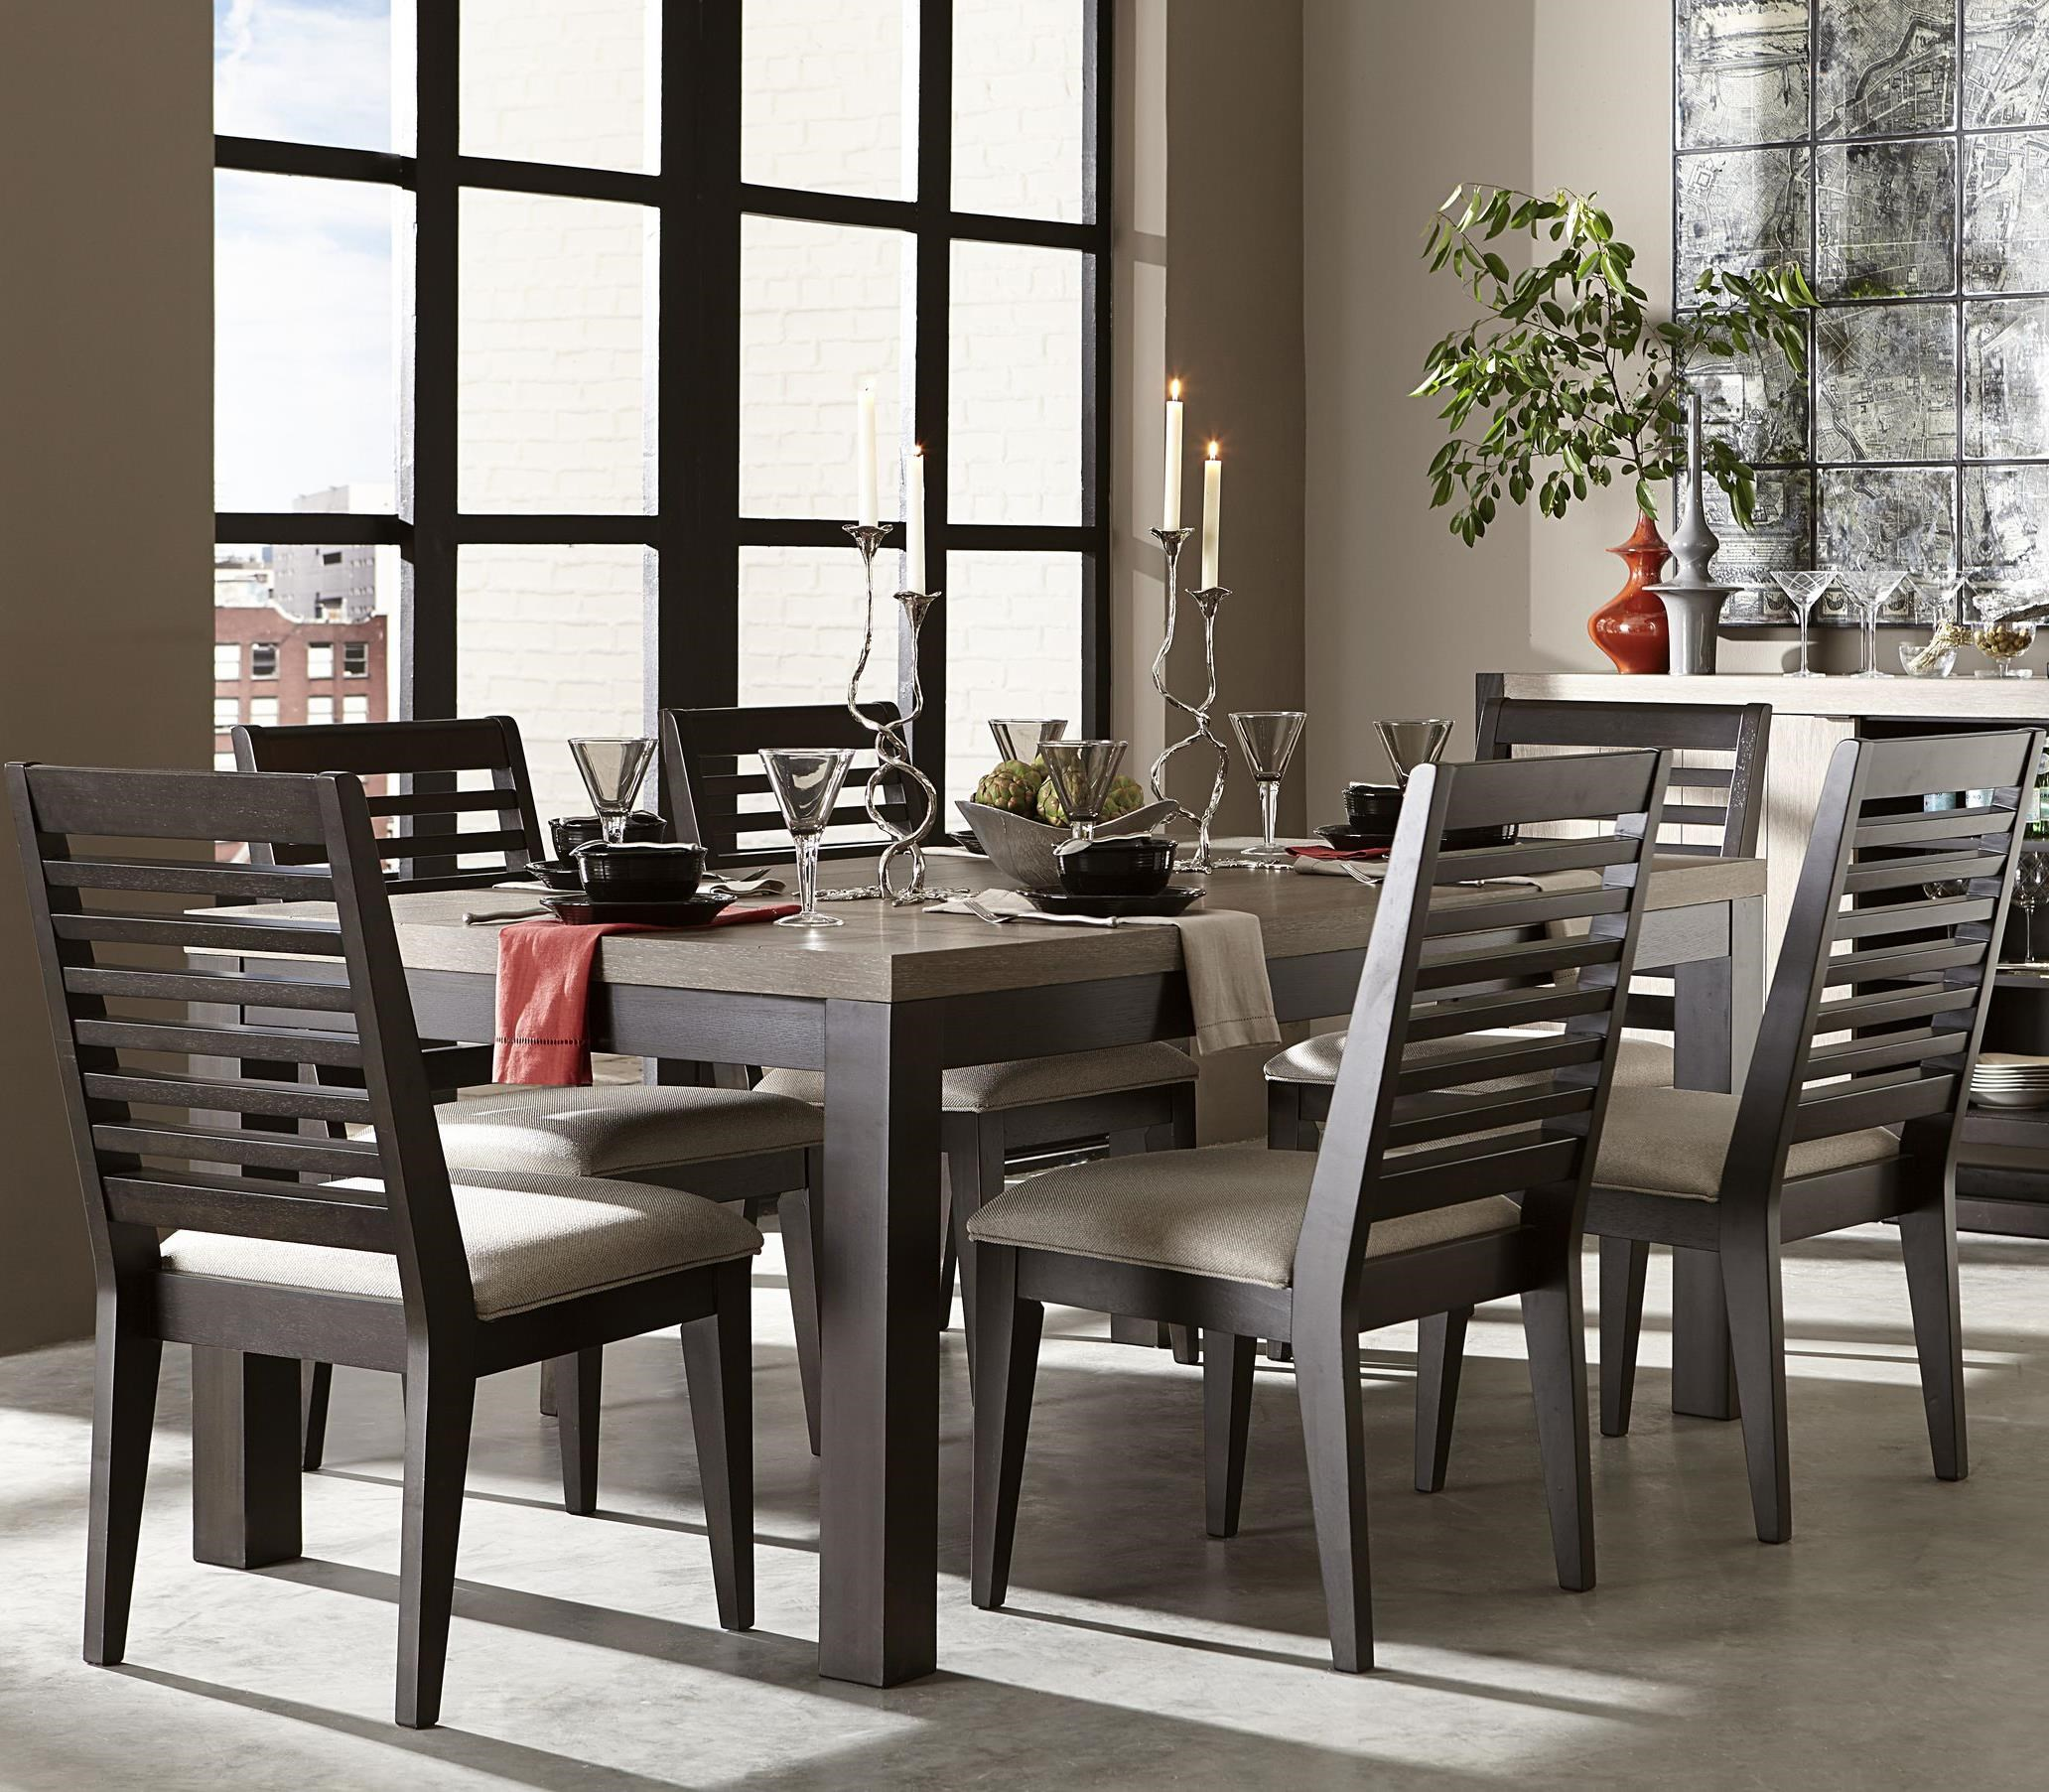 legacy classic helix 7 piece dining set with slat back side chairs dunk u0026 bright furniture dining 7 or more piece set